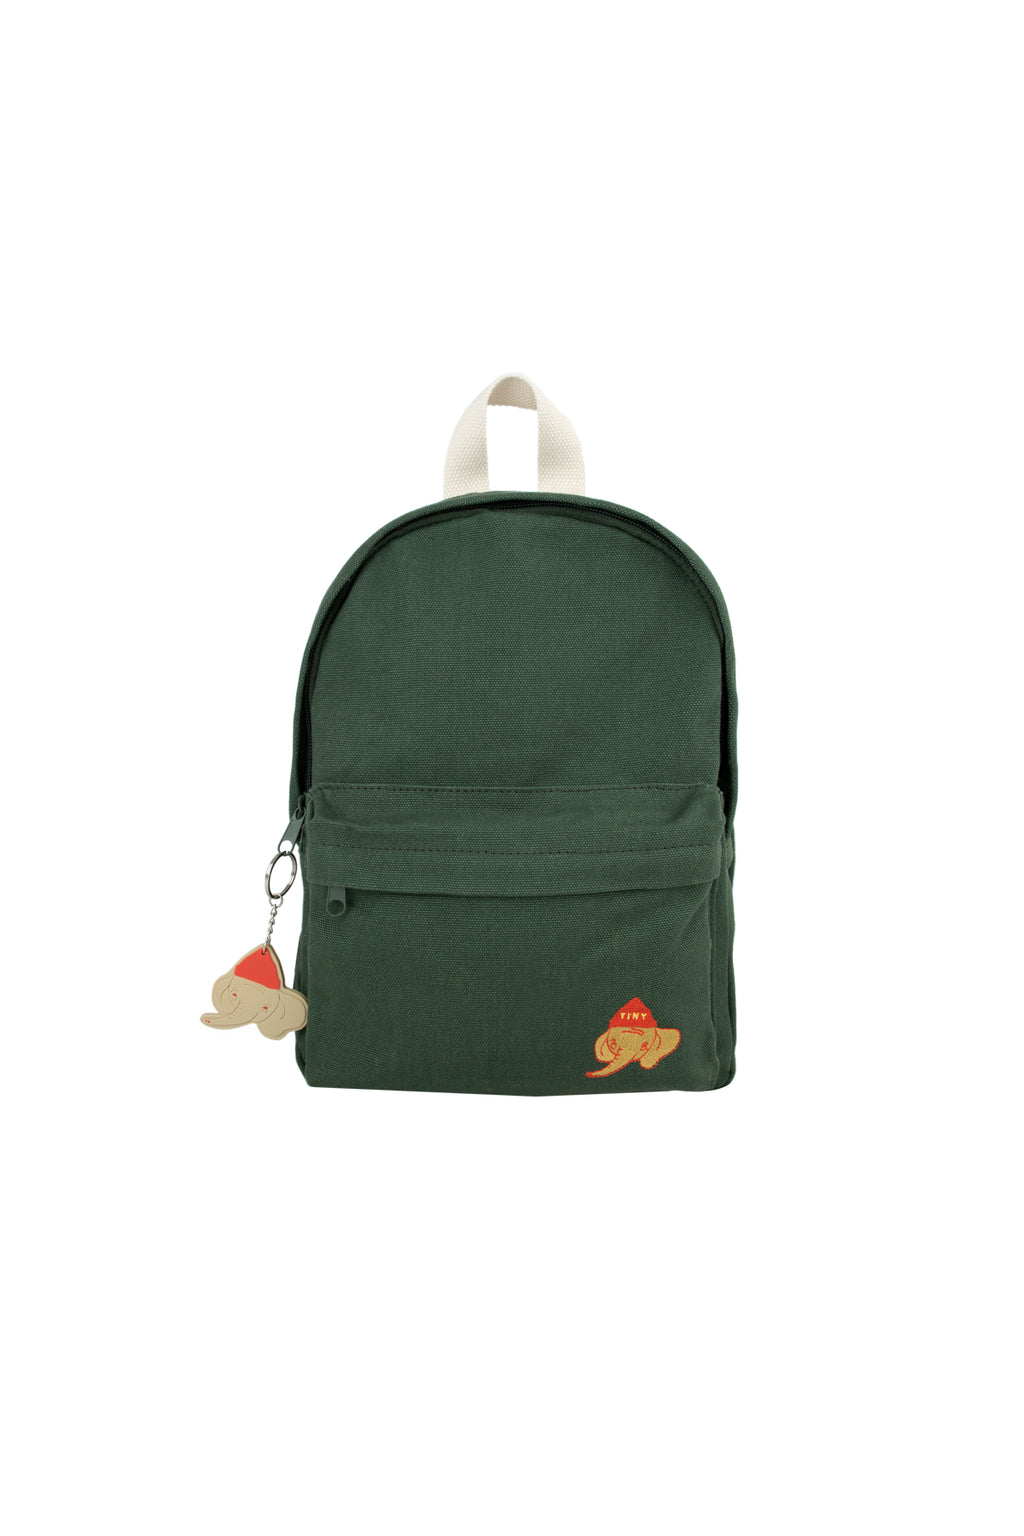 "Tiny Cottons ""Luckyphant"" Backpack - Bottle Green"